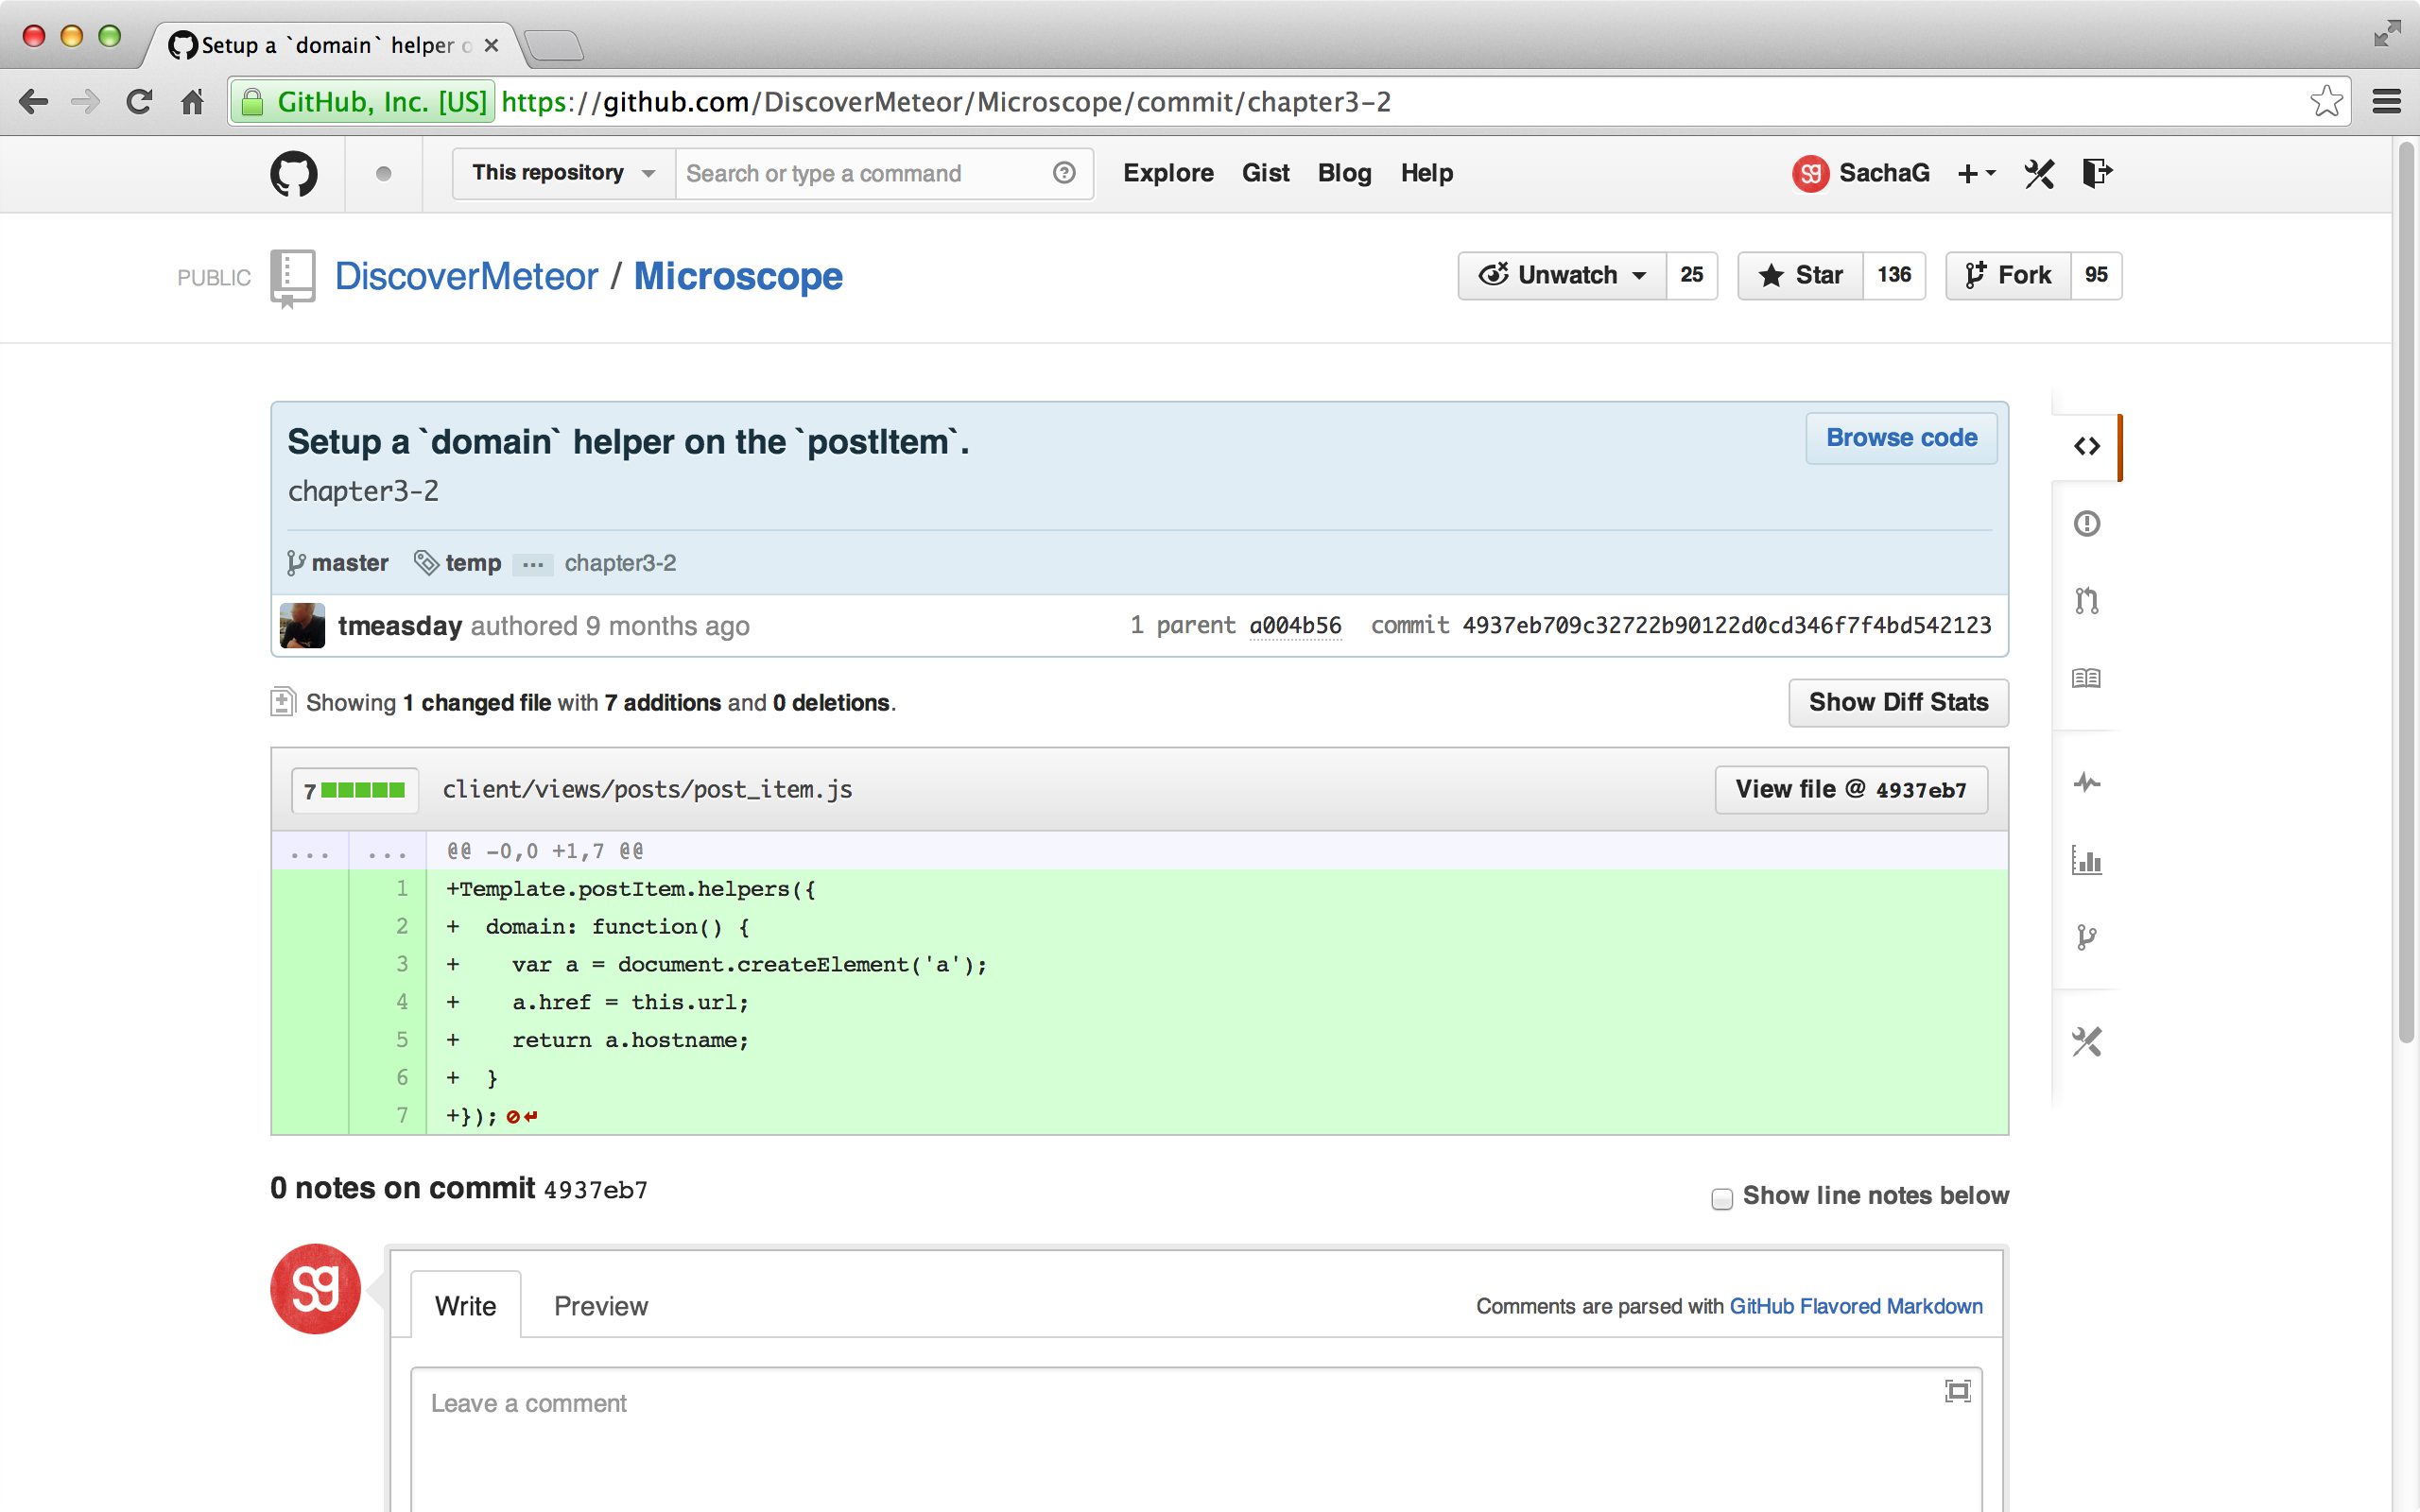 A Git commit as shown on GitHub.